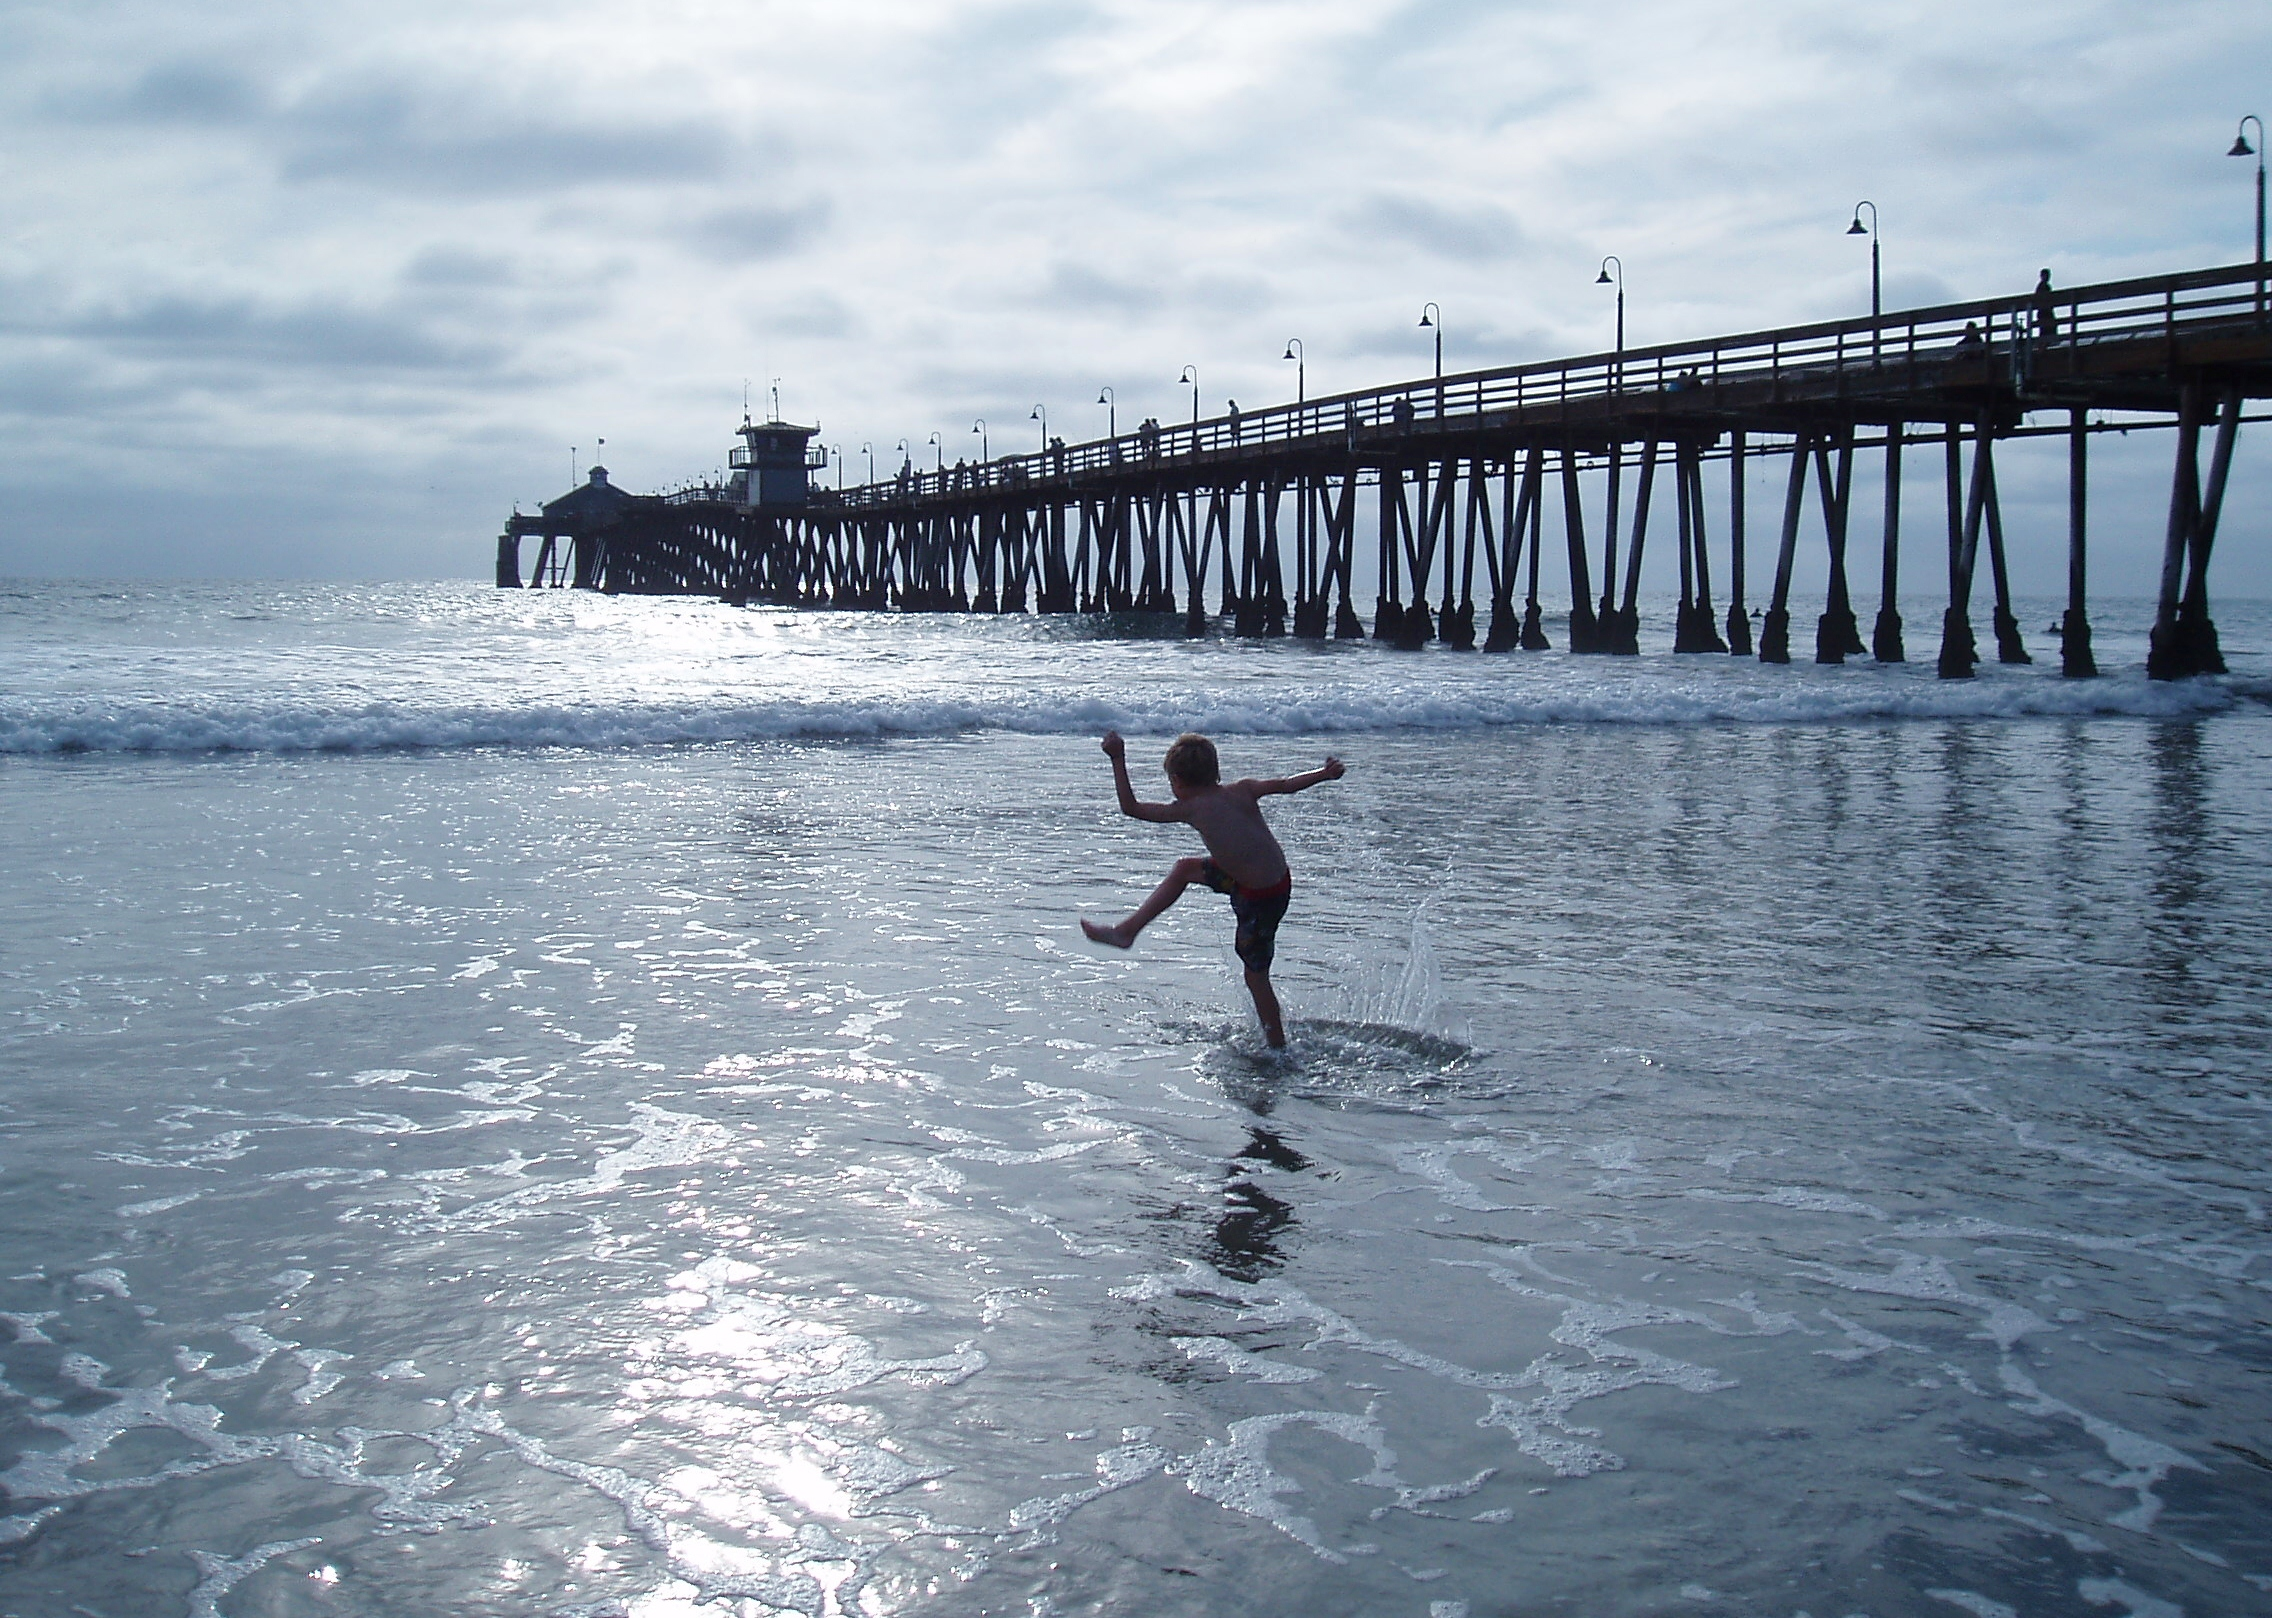 Summertime at Imperial Beach.